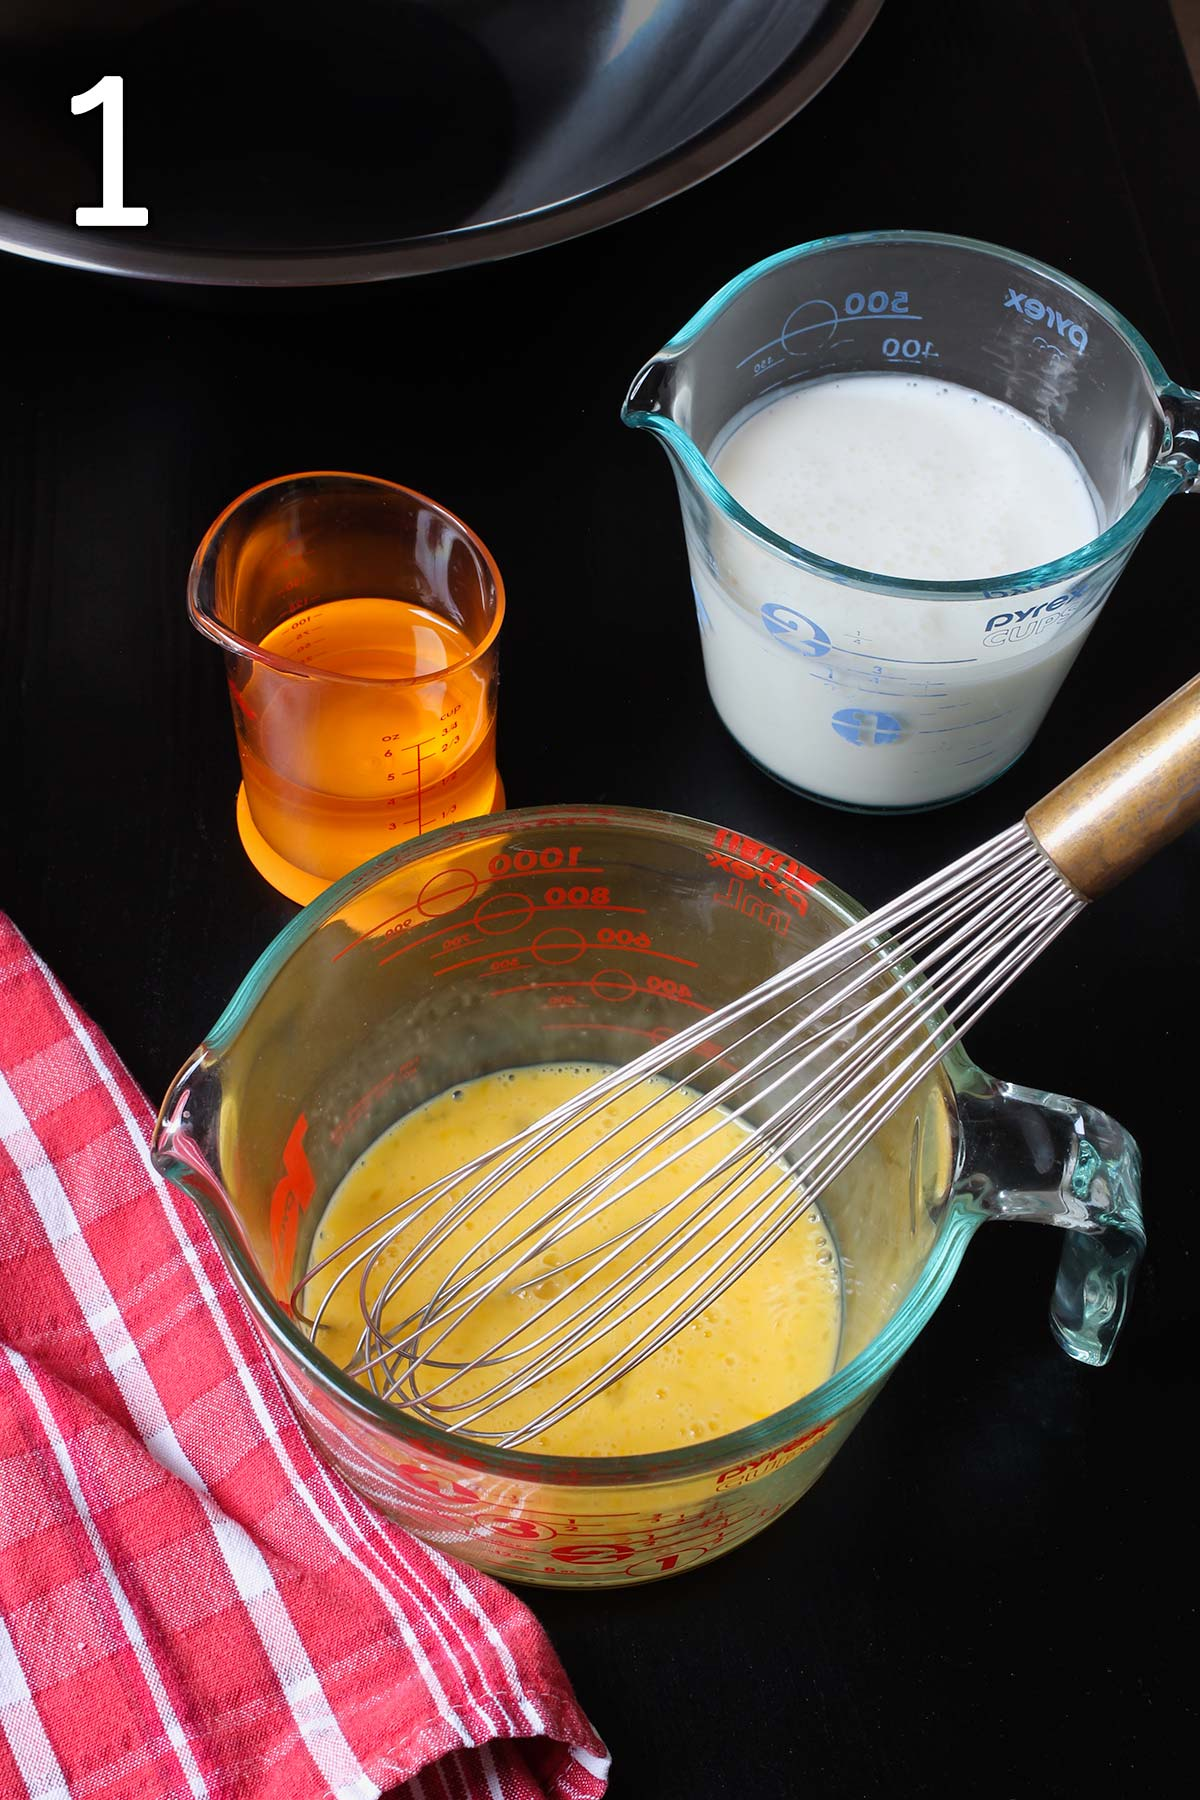 measures of oil, buttermilk, and beaten egg on the table with a red cloth.